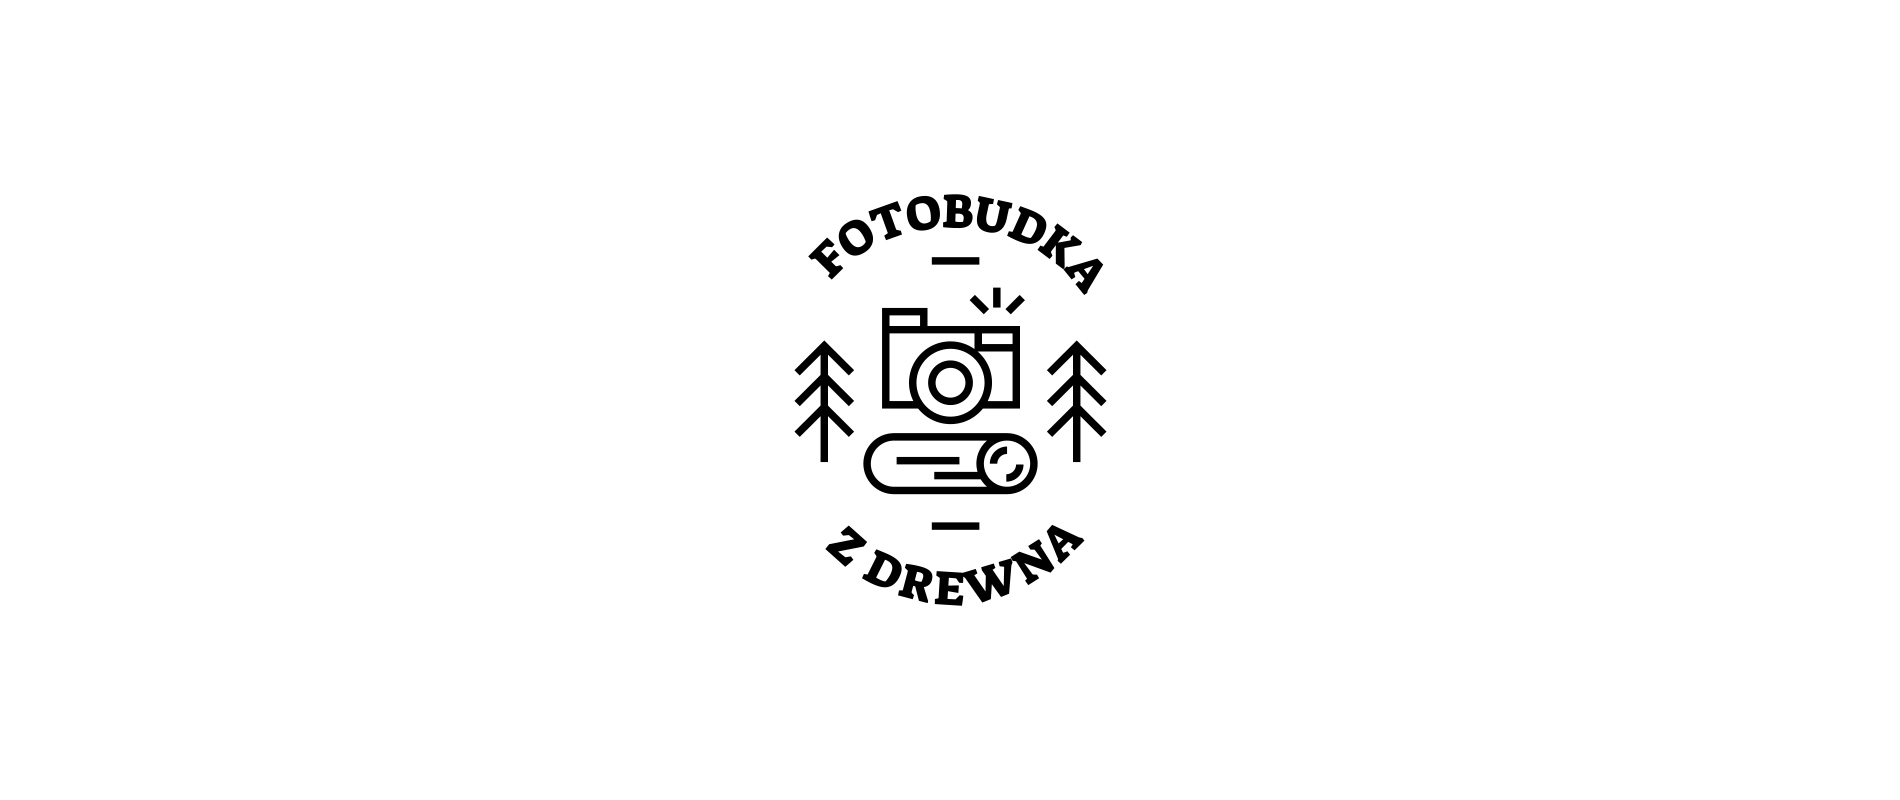 Fotobudka - logo on a white background